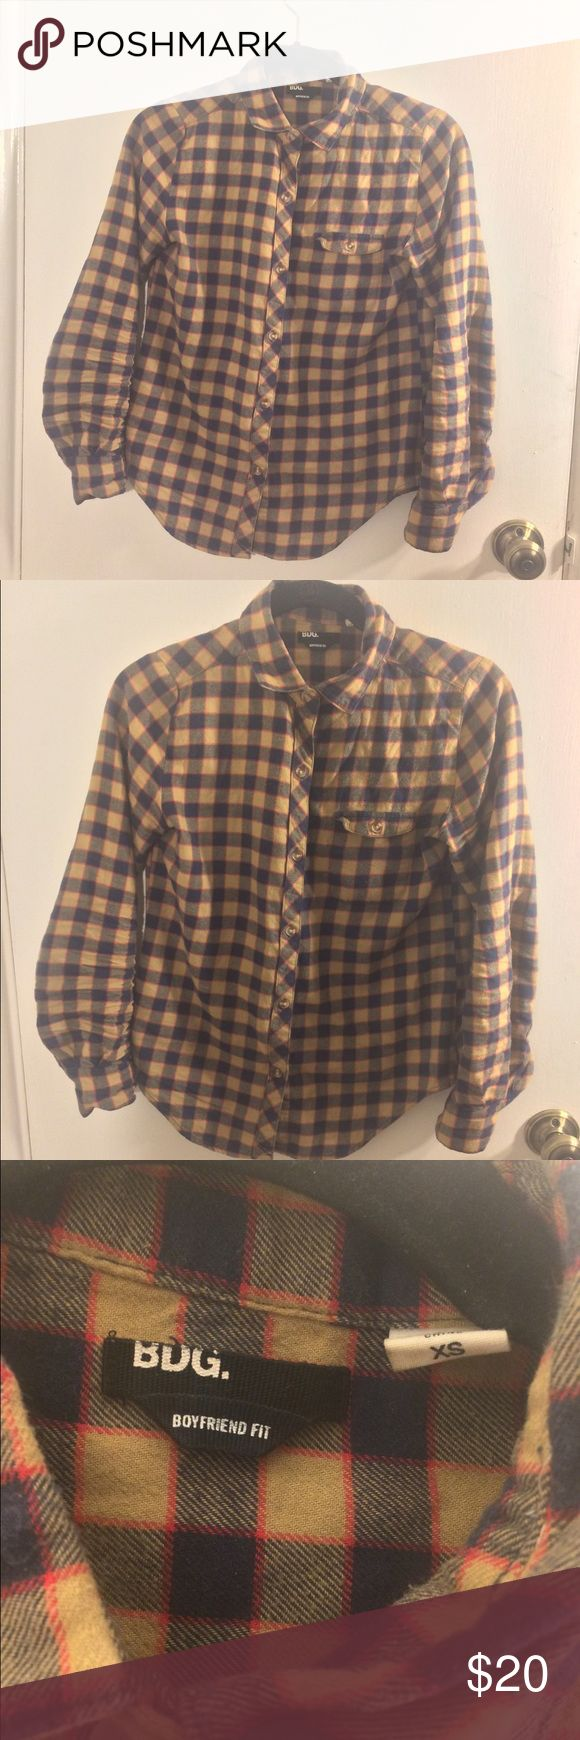 17 best ideas about flannel shirts for women on pinterest for Women s button down shirts extra long